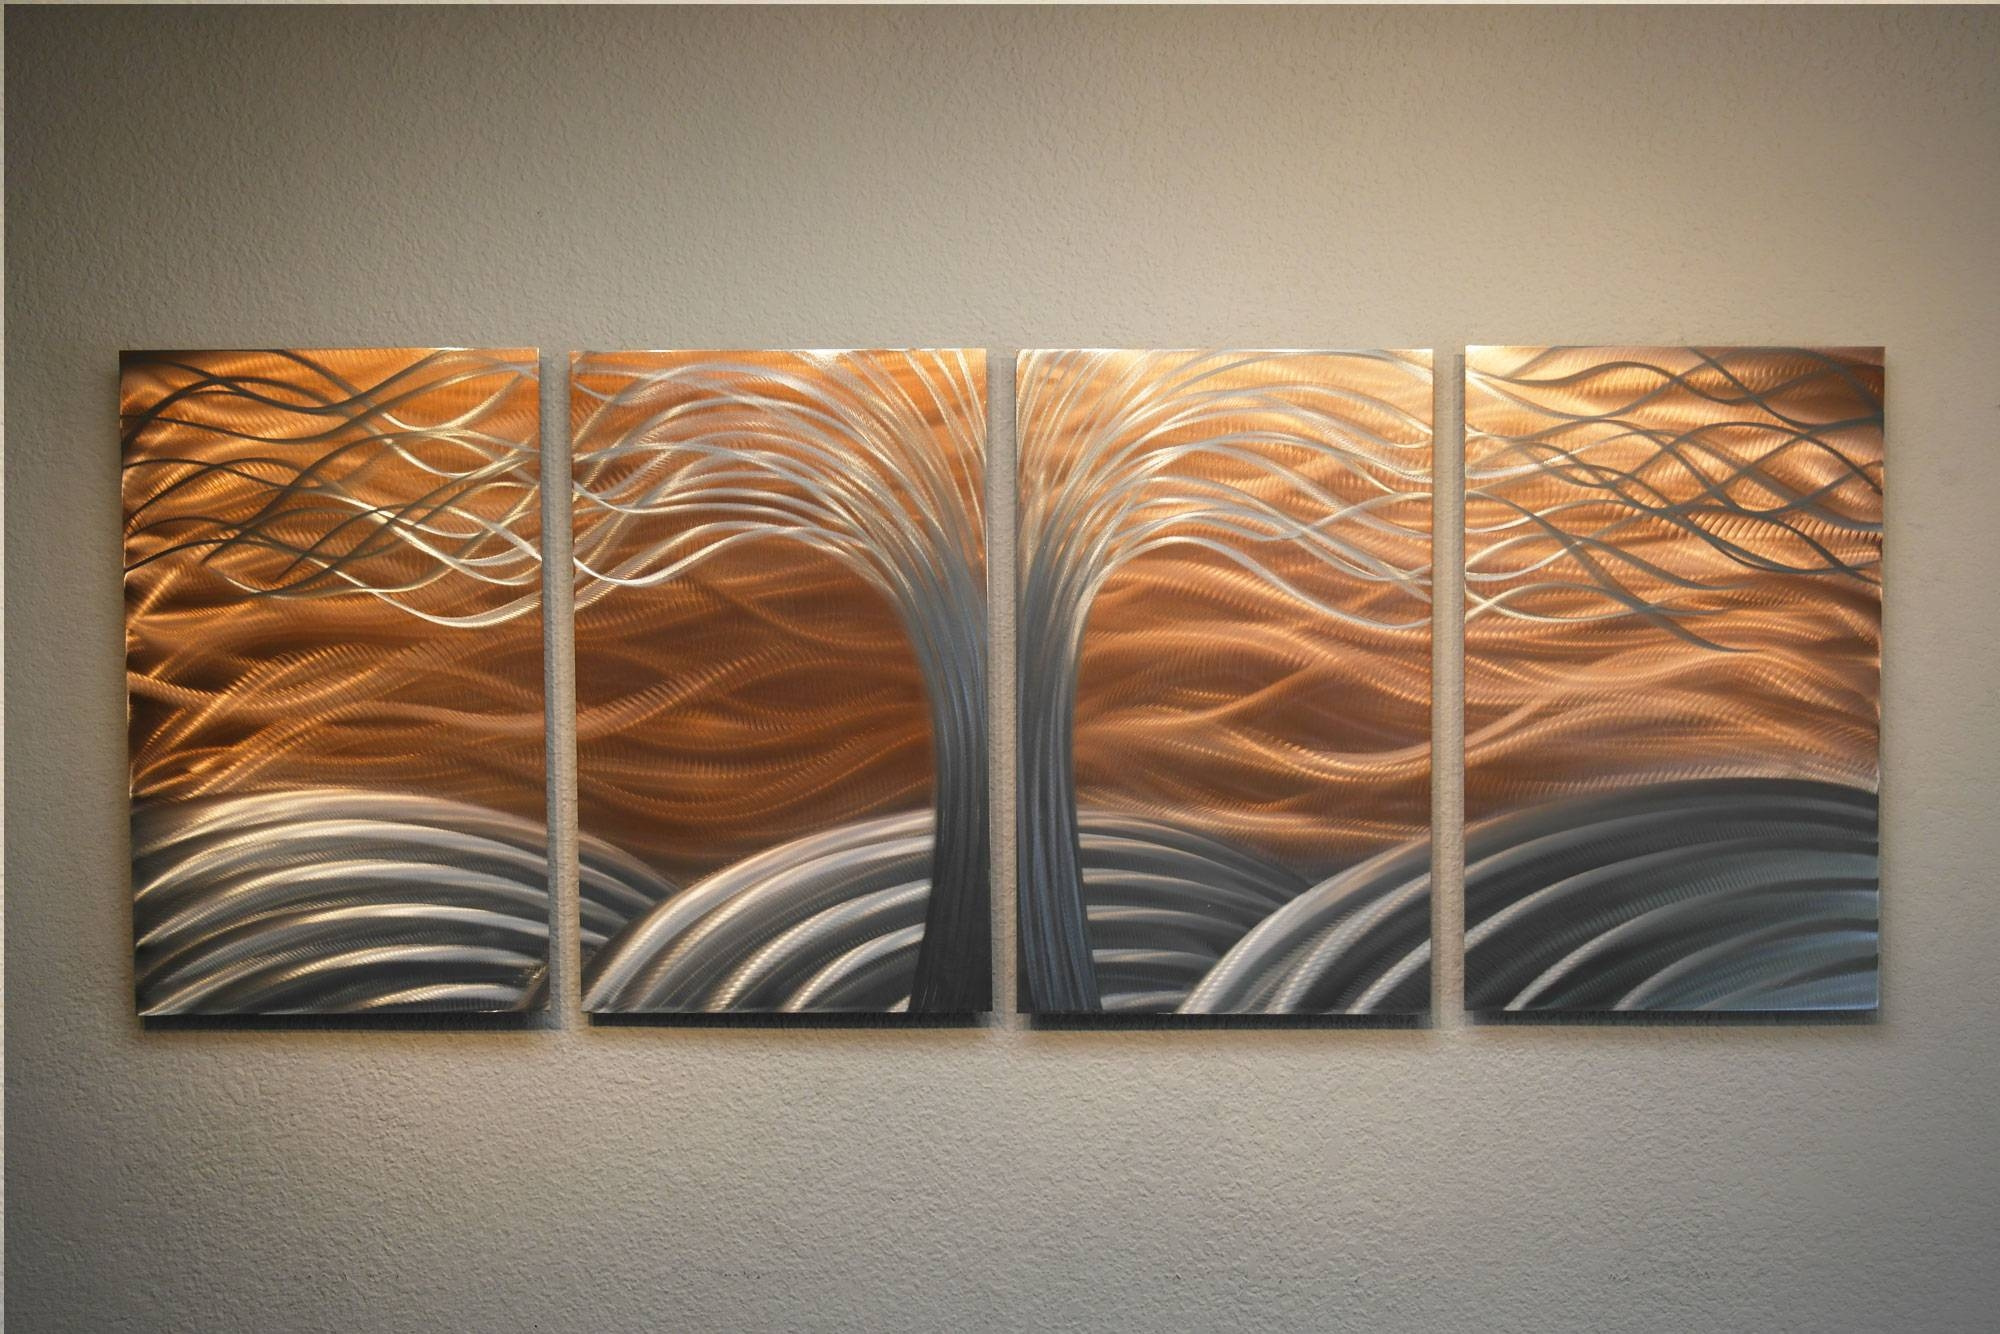 Tree Of Life Bright Copper – Metal Wall Art Abstract Sculpture Within Most Current Tree Of Life Metal Wall Art (View 13 of 20)